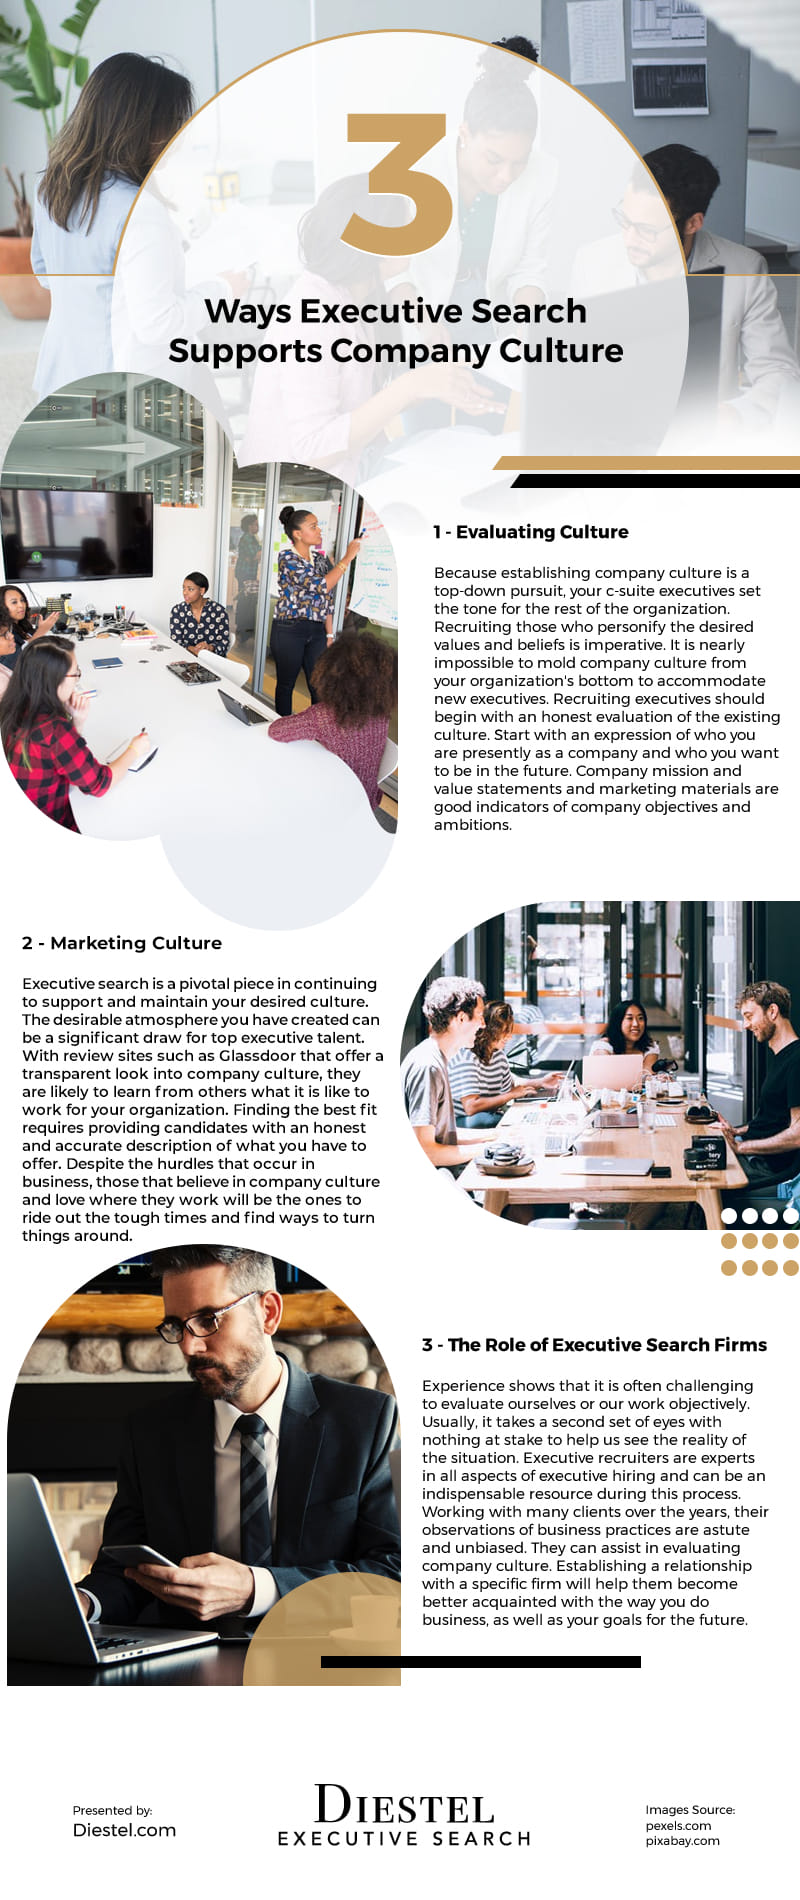 3 Ways Executive Search Supports Company Culture